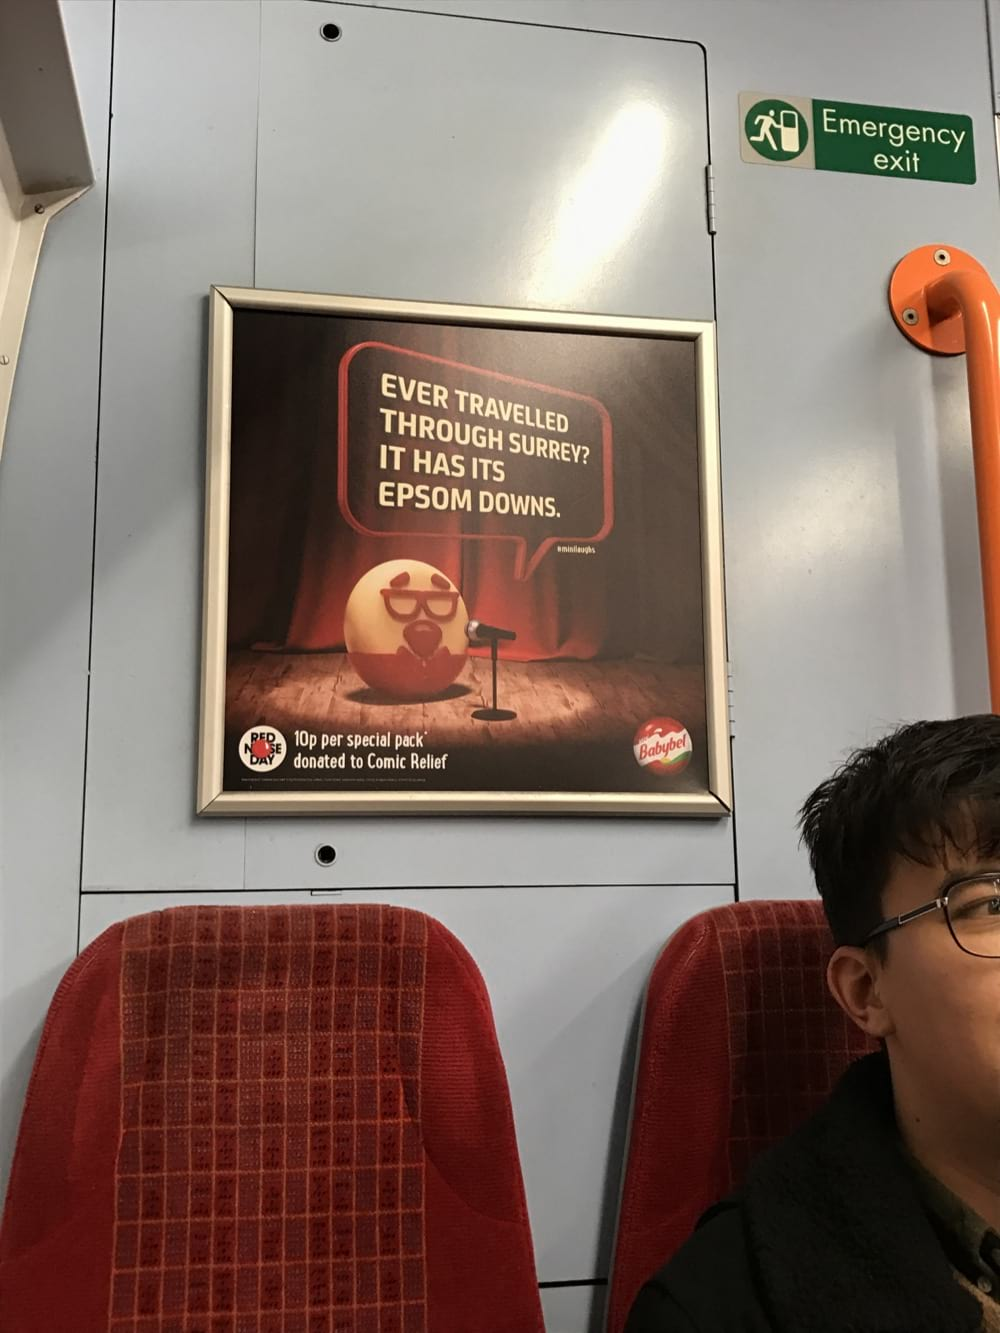 Ever travelled through Surrey? It has it's Epsom Downs - Mini BabyBel Comic Relief Train